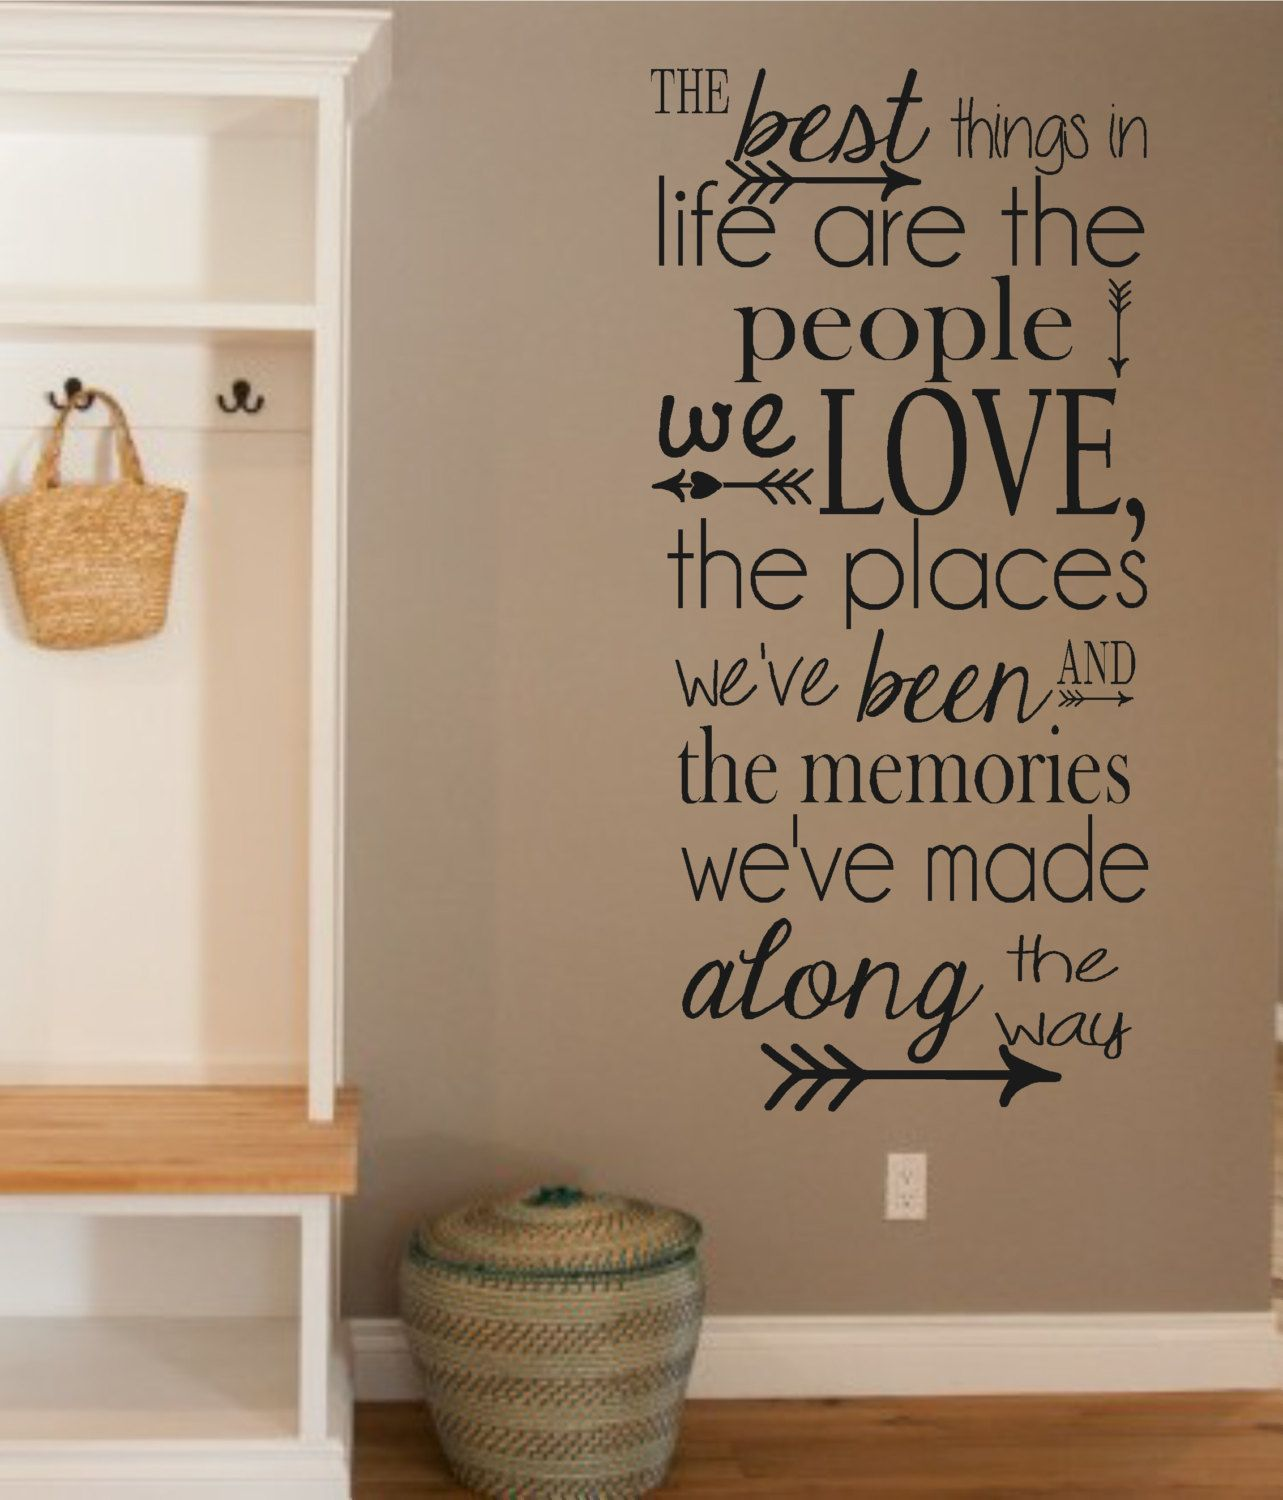 Attirant Vinyl Wall Decal The Best Things In Life  People  Love  Memories  Vinyl  Wall Quotes  Family Decor  Living Room Decor By Landbgraphics On Etsy